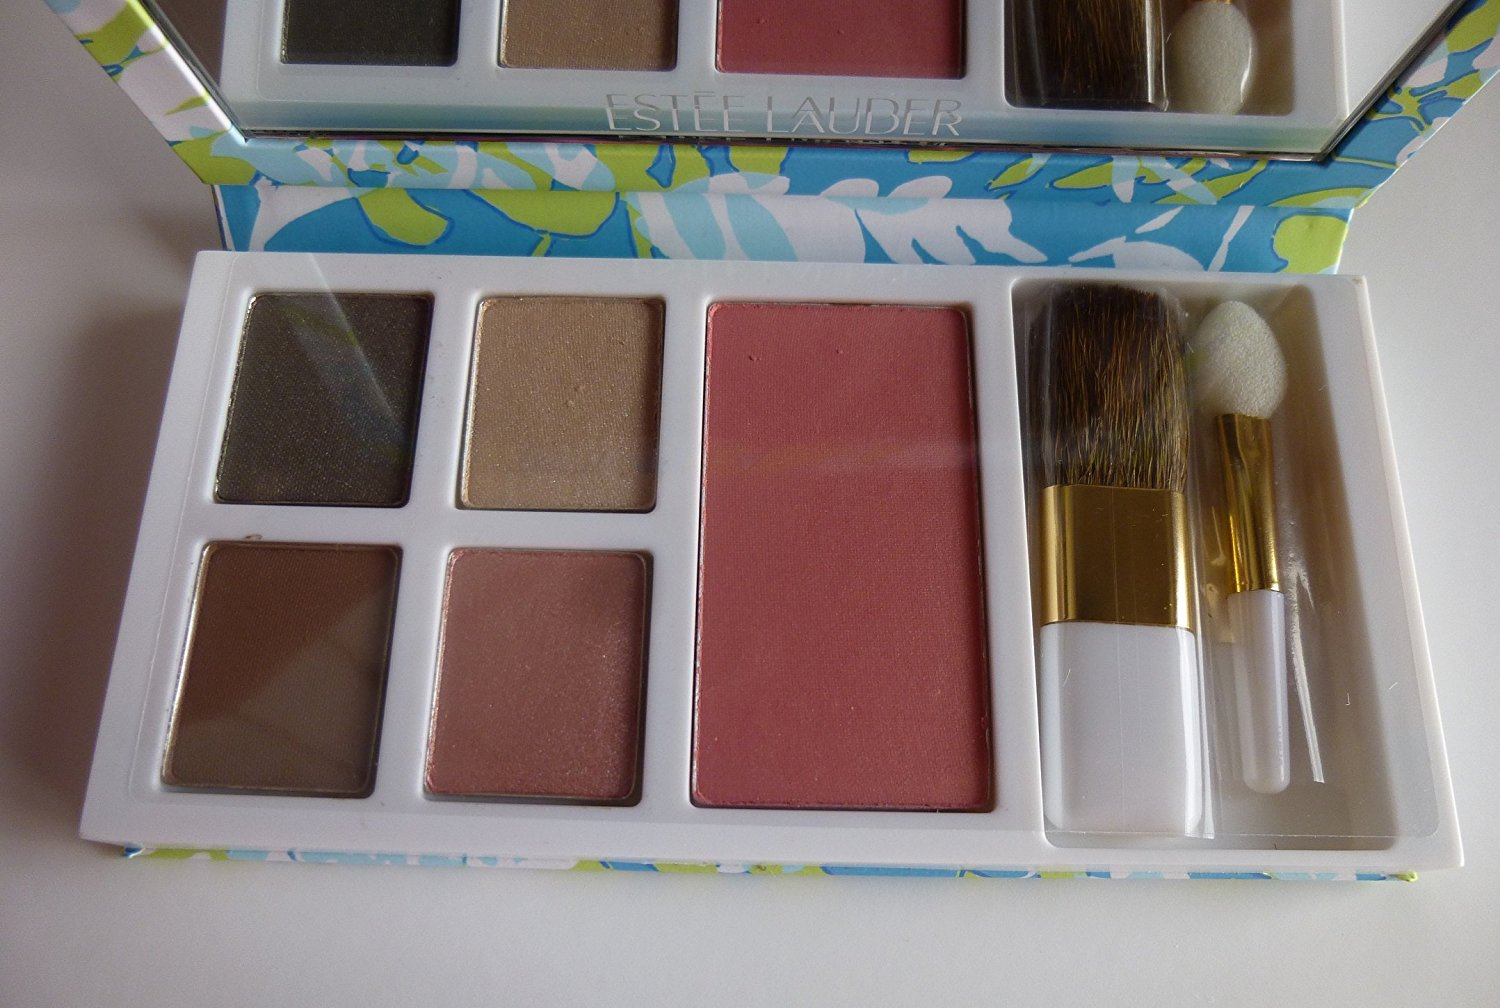 Estee Lauder Milly Pulitzer Designer Pure Color Eyeshadow Pure Color Blush and Floral Cosmetic Bag